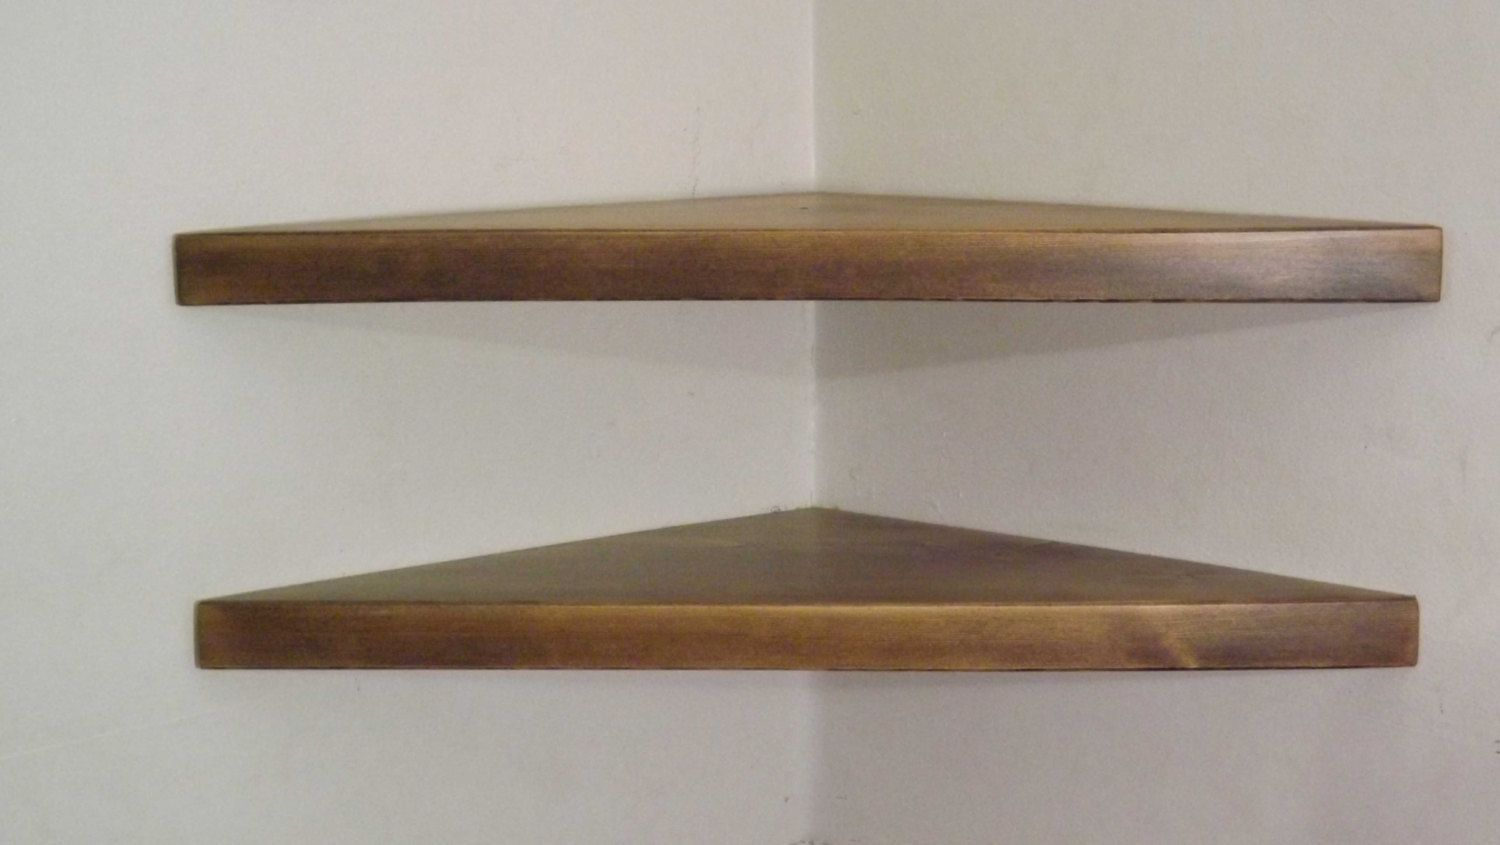 set inch floating corner shelves with ash stain handmade solid oak shelf the usa bawoodworking etsy shelving unit best timber for swivel cable box mdf mantel ikea fittings garage